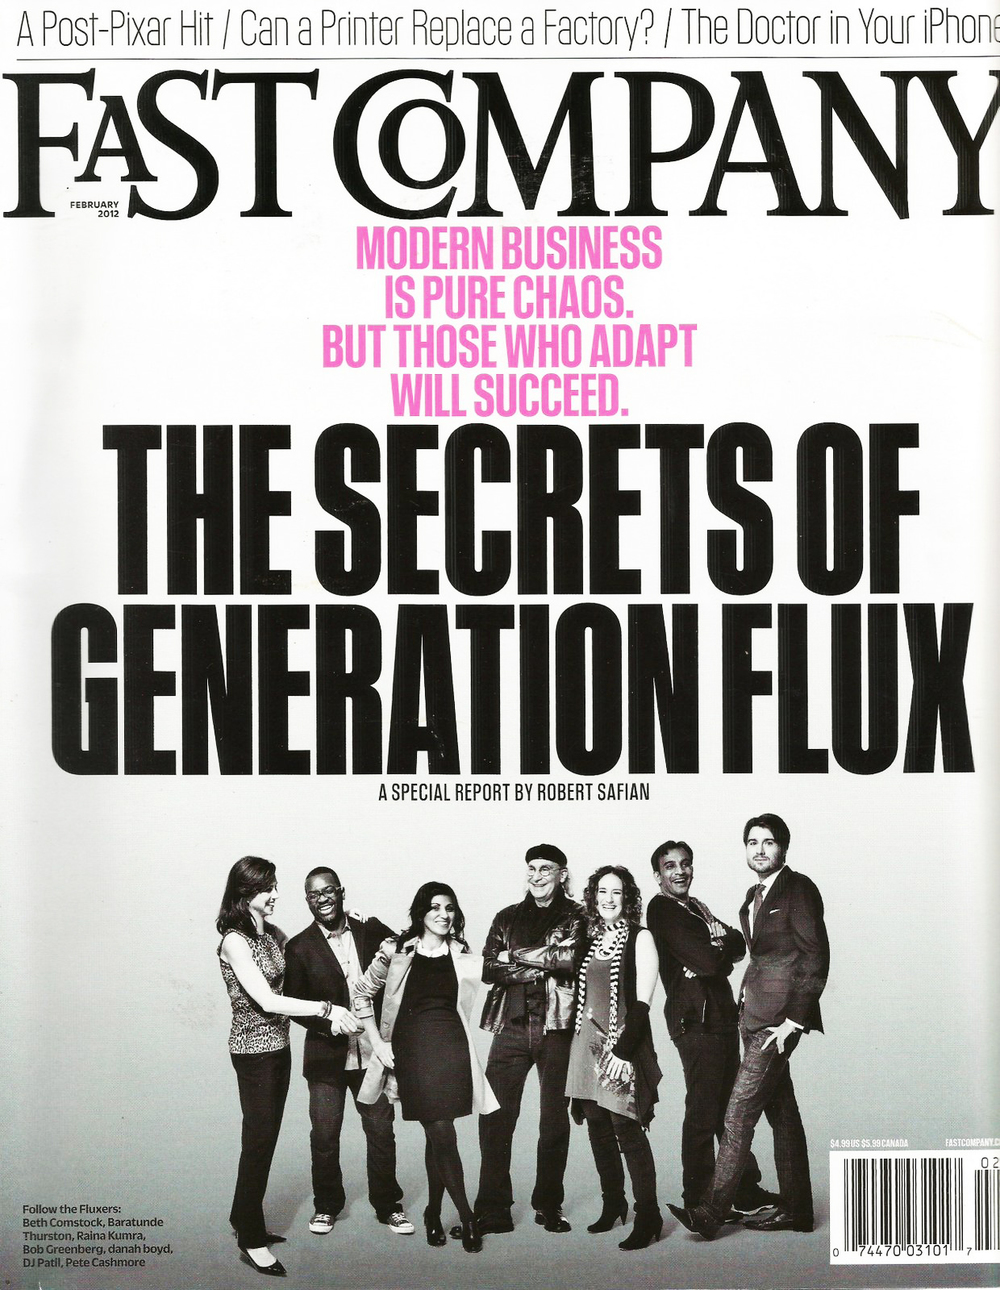 2012_feb_fastcompany_1.jpg